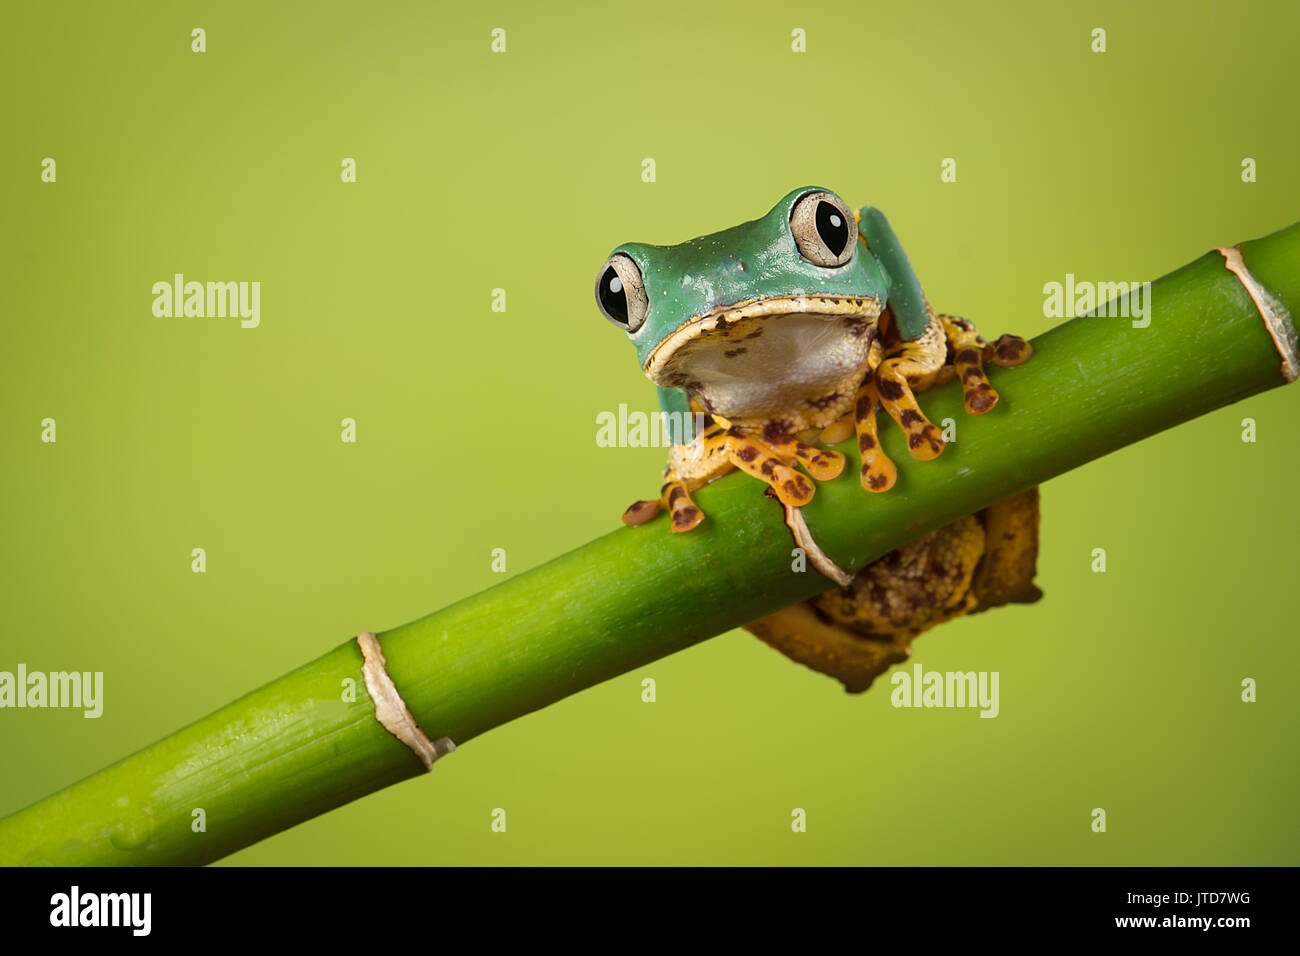 Super Tiger Leg Monkey Frog balancing on a bamboo shoot also known as the waxy tree frog - Stock Image